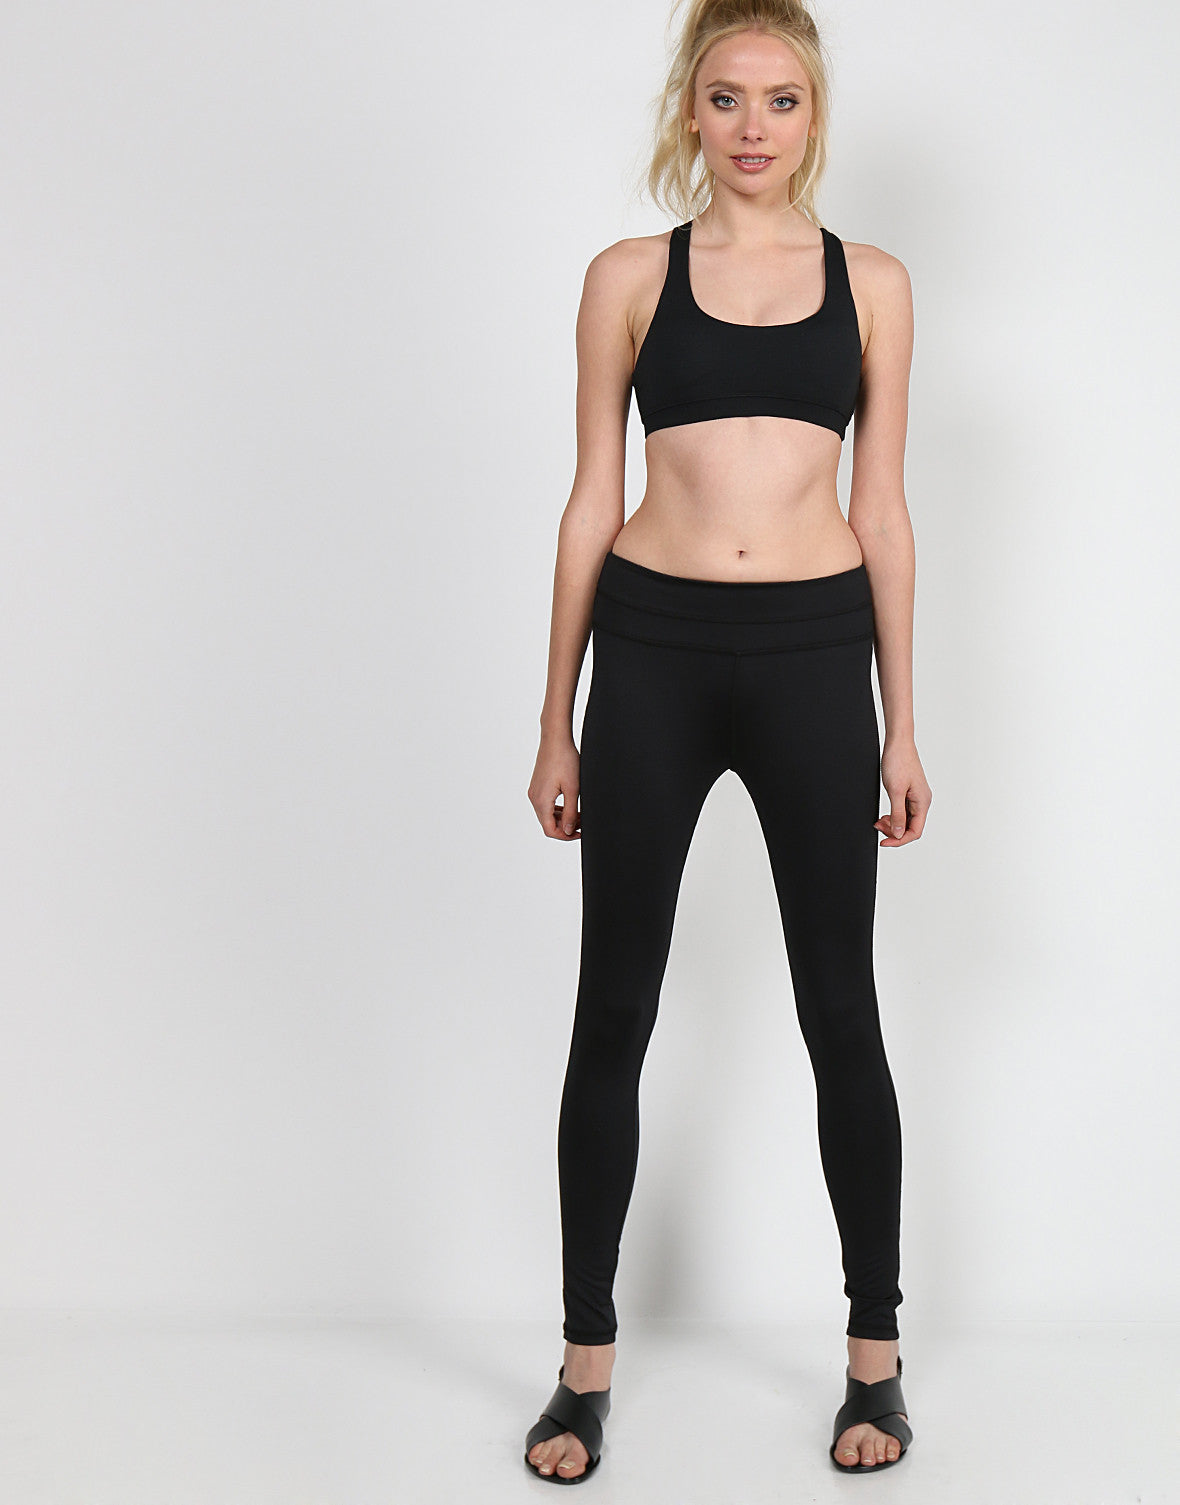 Simple Workout Pants